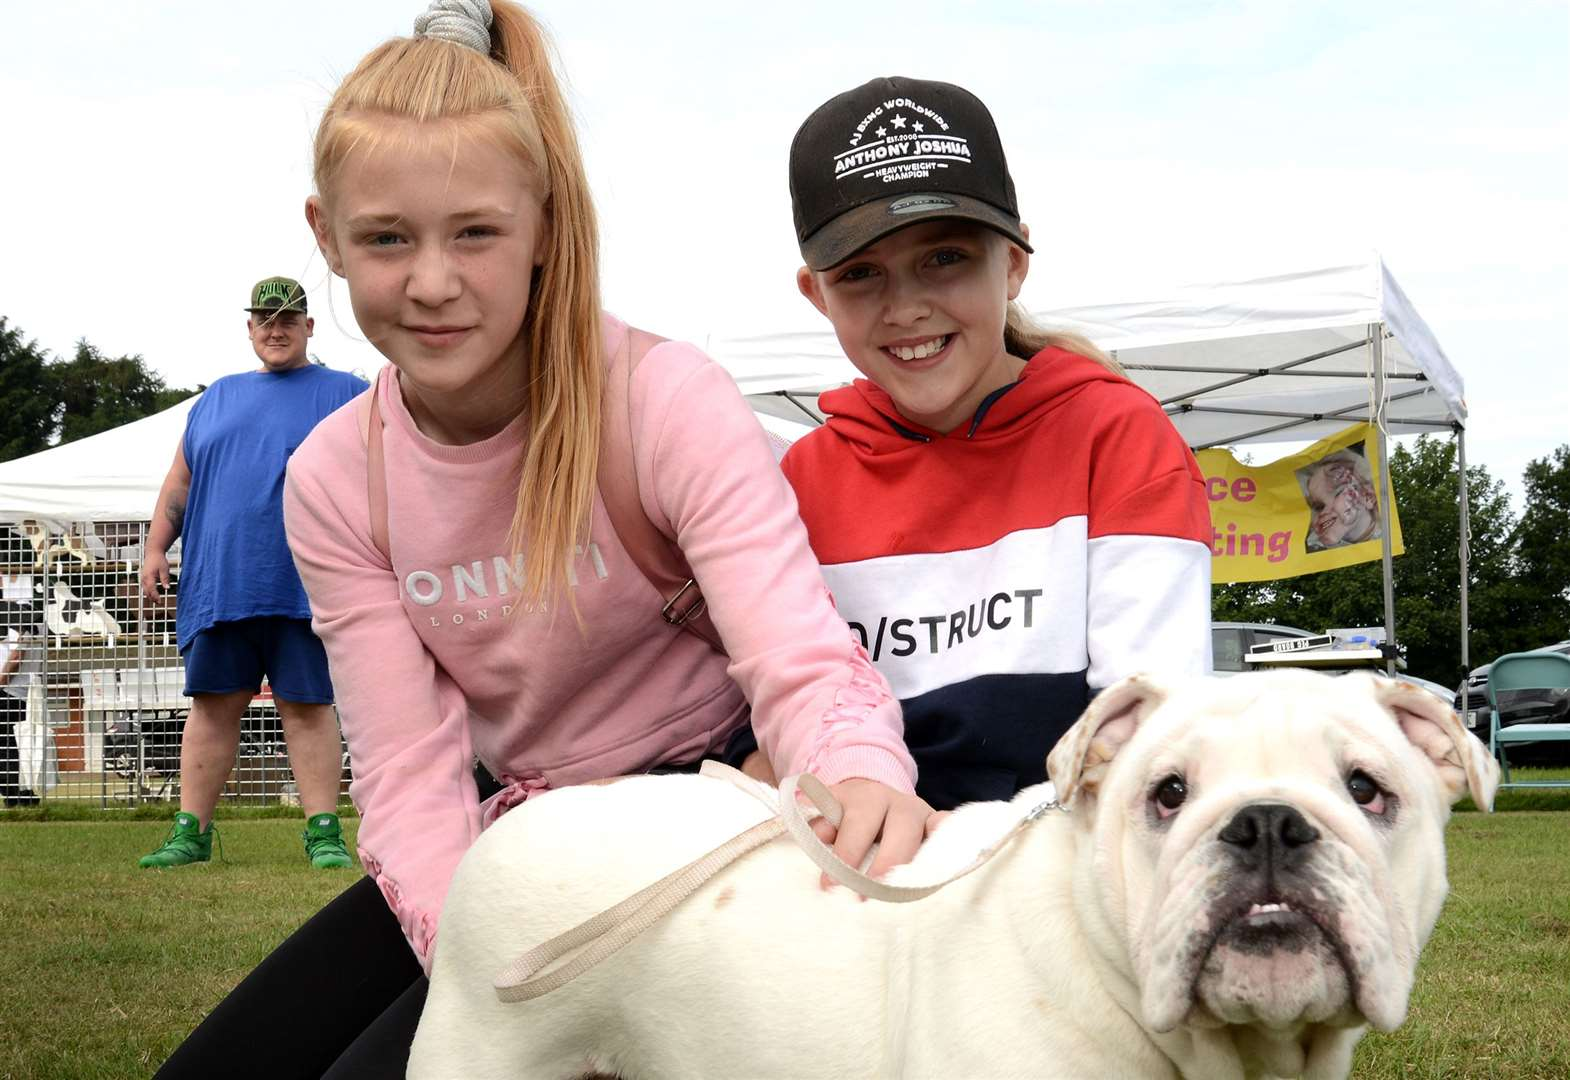 It's a dog's life as sun shines on festival